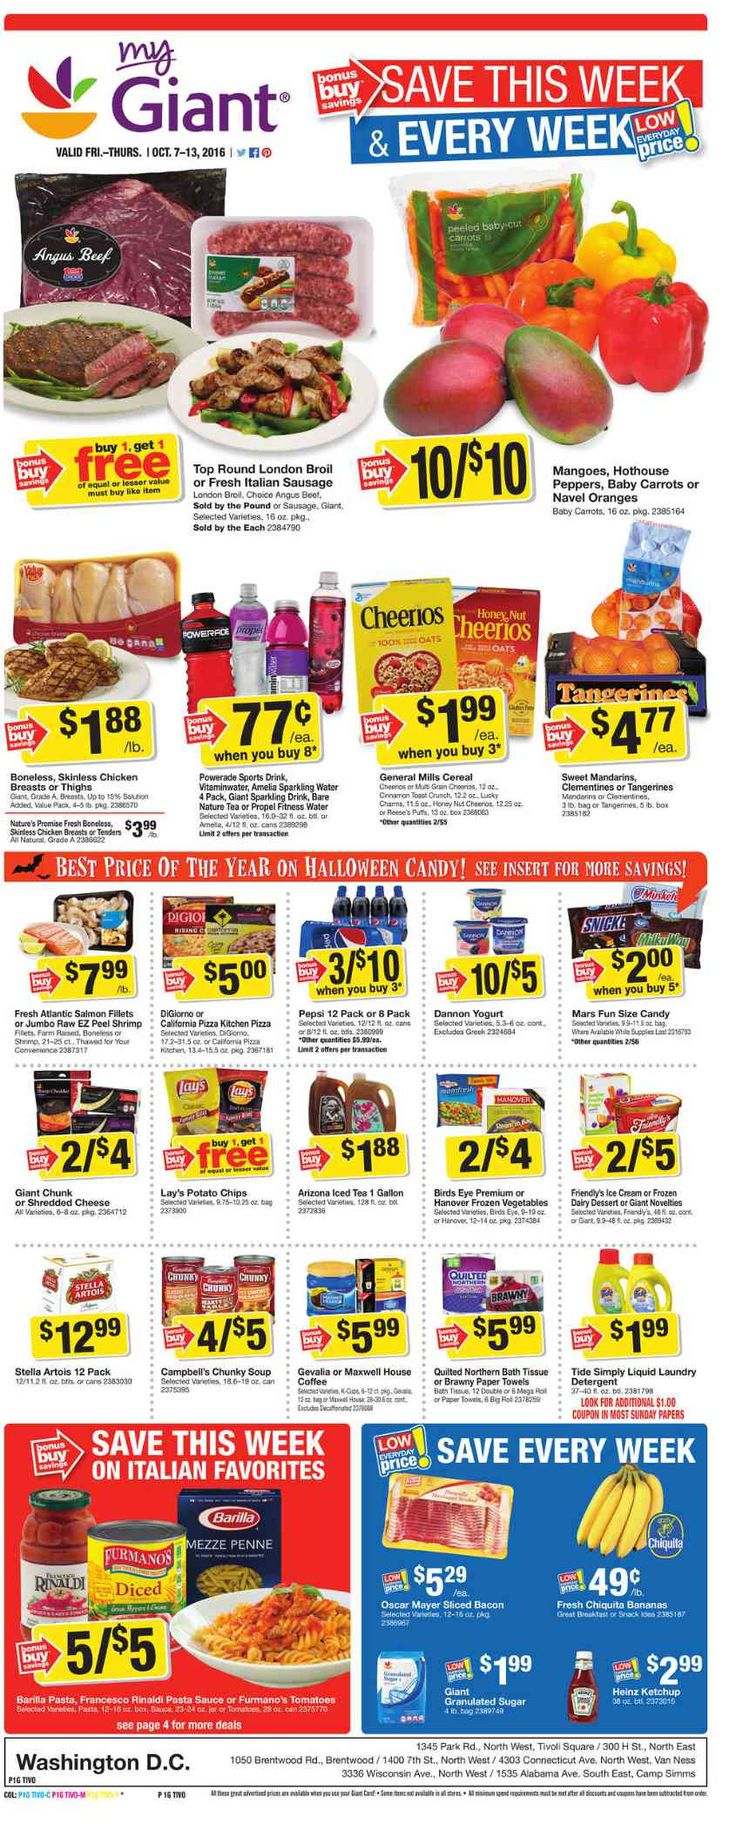 Giant Food Weekly Ad October 7 - 13, 2016 - http://www.olcatalog.com/grocery/giant-food-weekly-ad.html